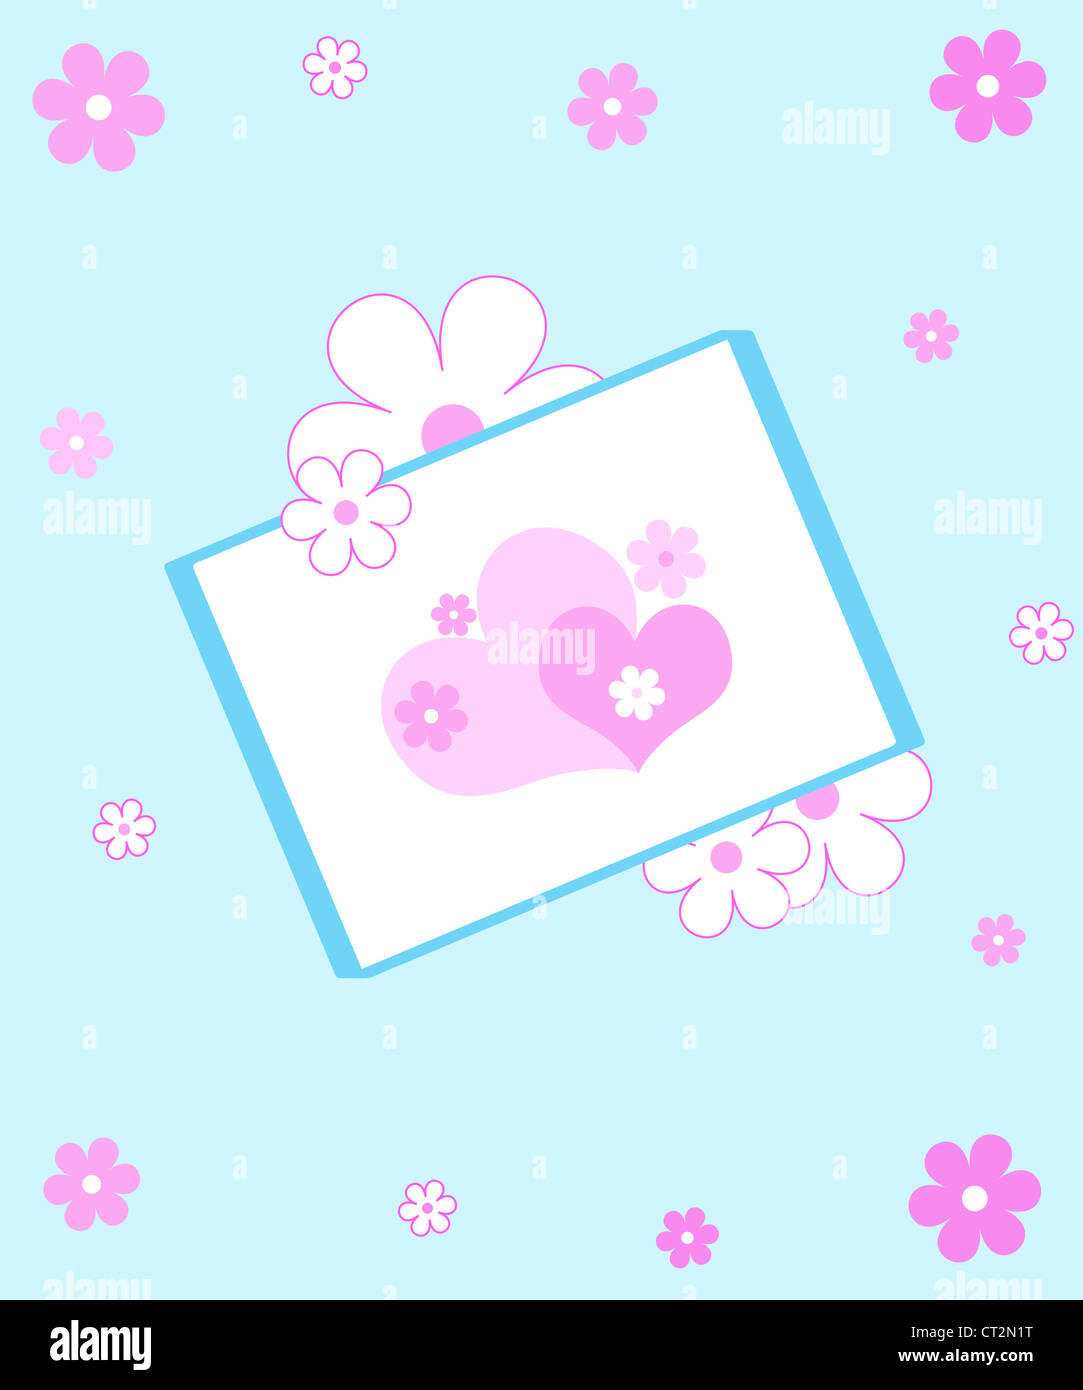 Hearts and flowers frame on light blue Stock Photo